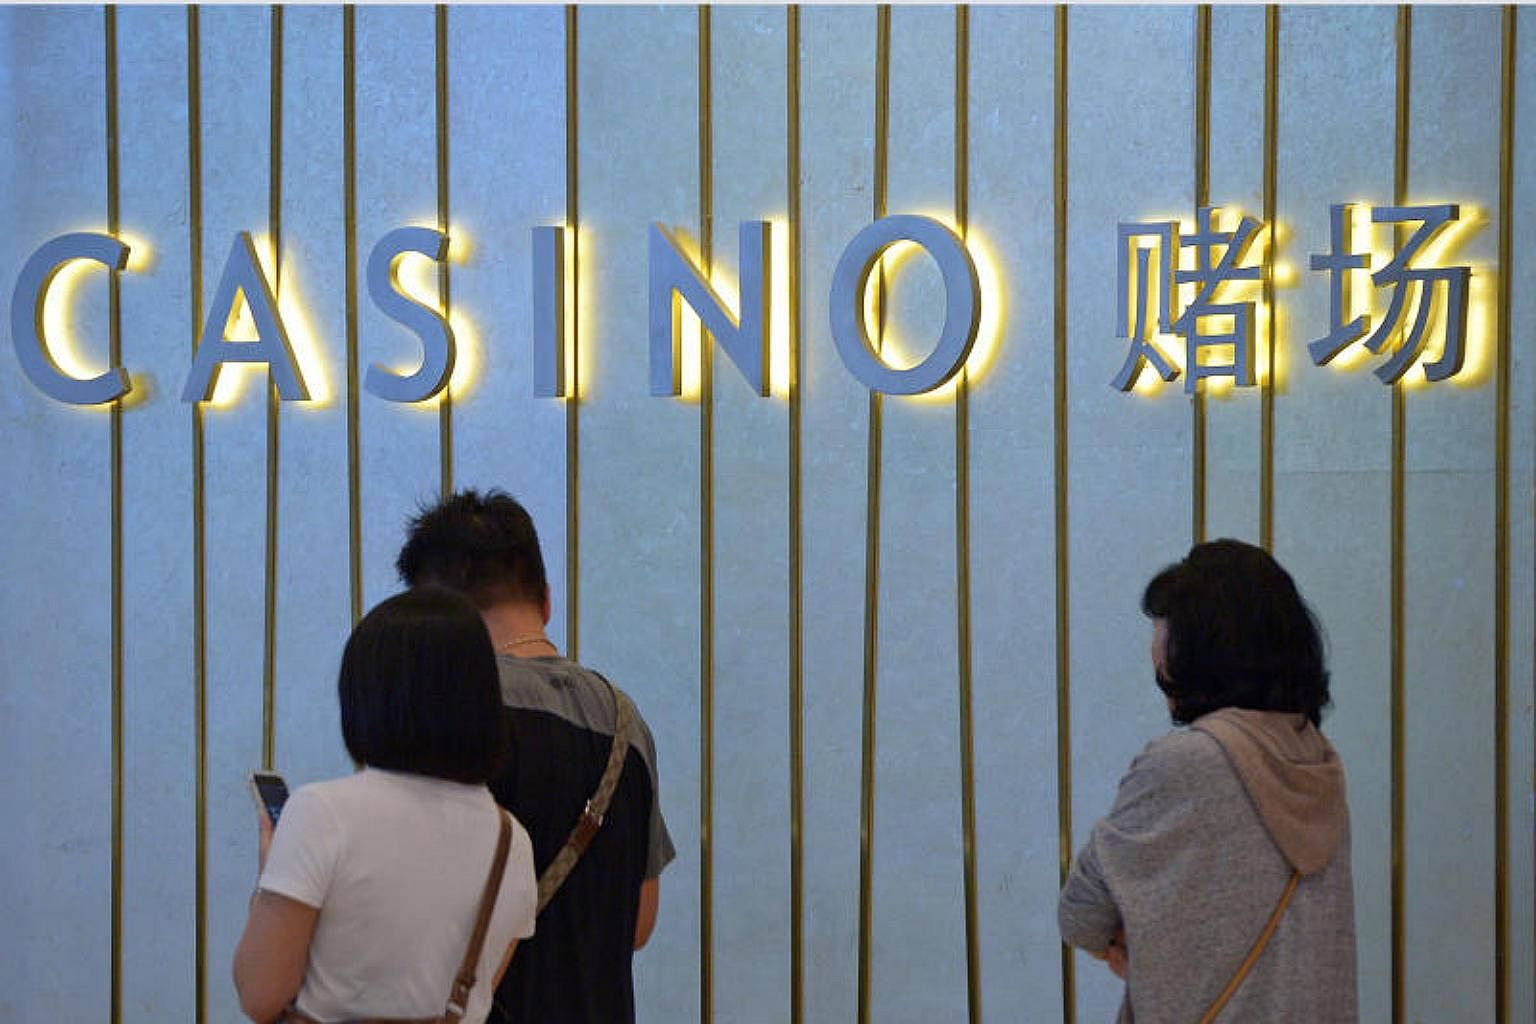 Casino Levies At Their Lowest Level Since Opening Of Two Casinos Here In 2010 Singapore News Top Stories The Straits Times